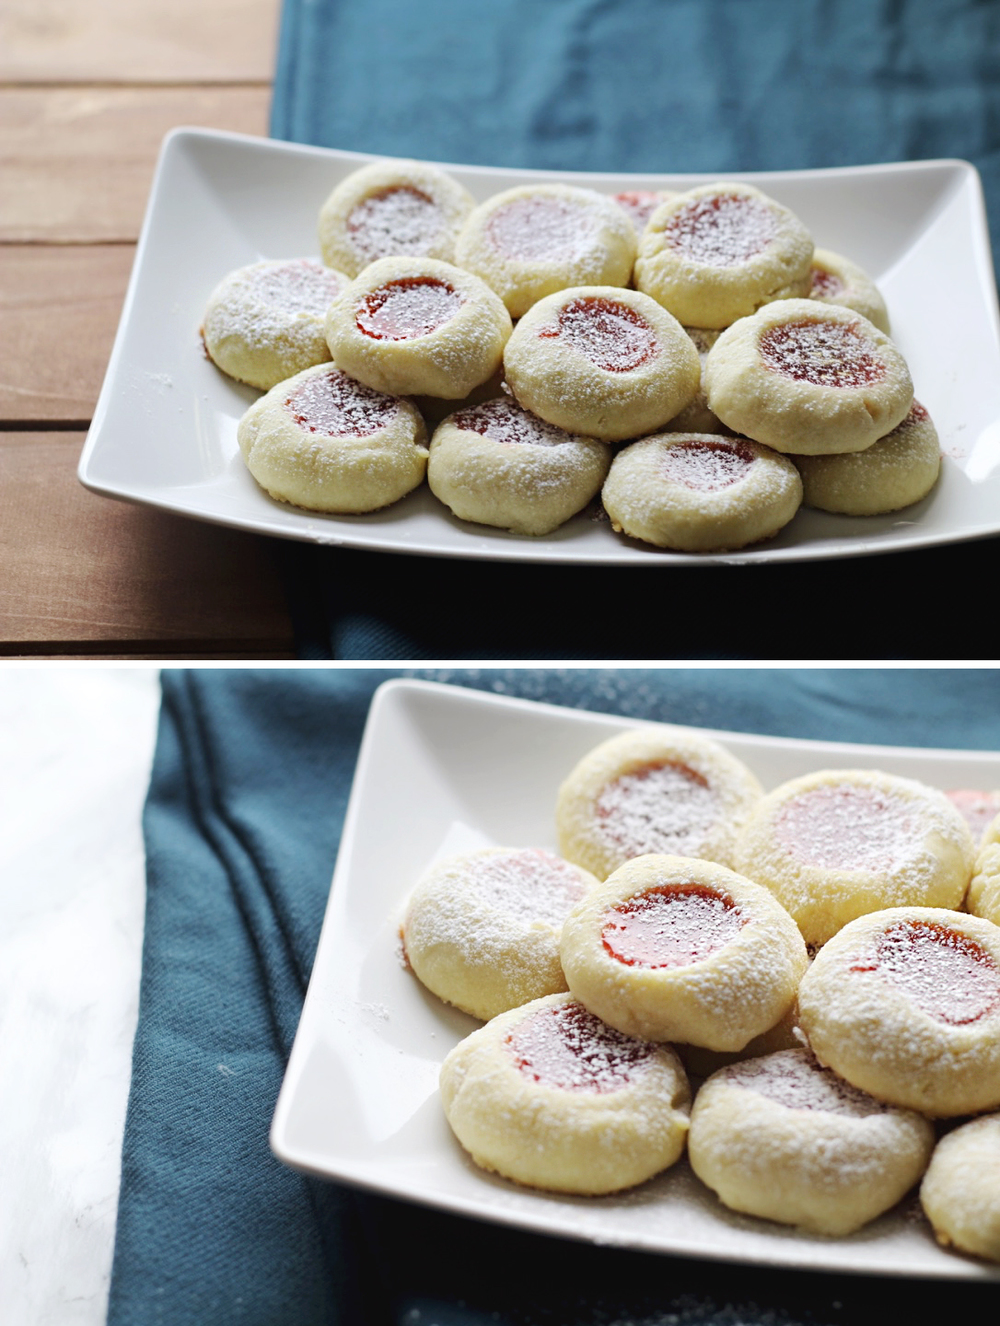 quick and easy Christmas cookie recipe anyone? Super soft butter cookies that just melt in your mouth :)